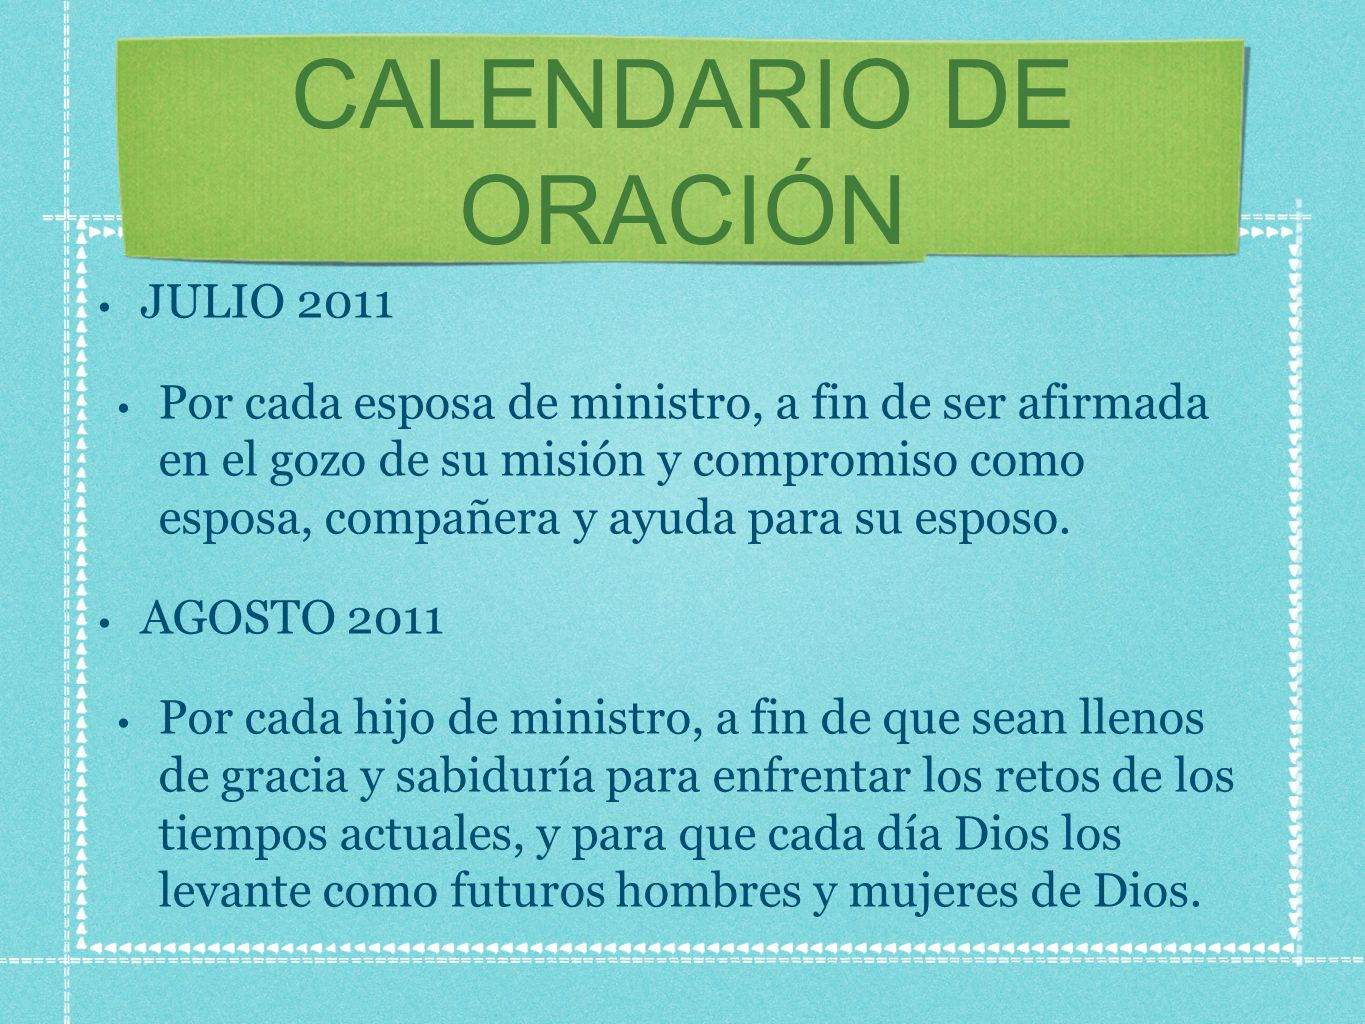 CALENDARIO DE ORACIÓN JULIO 2011